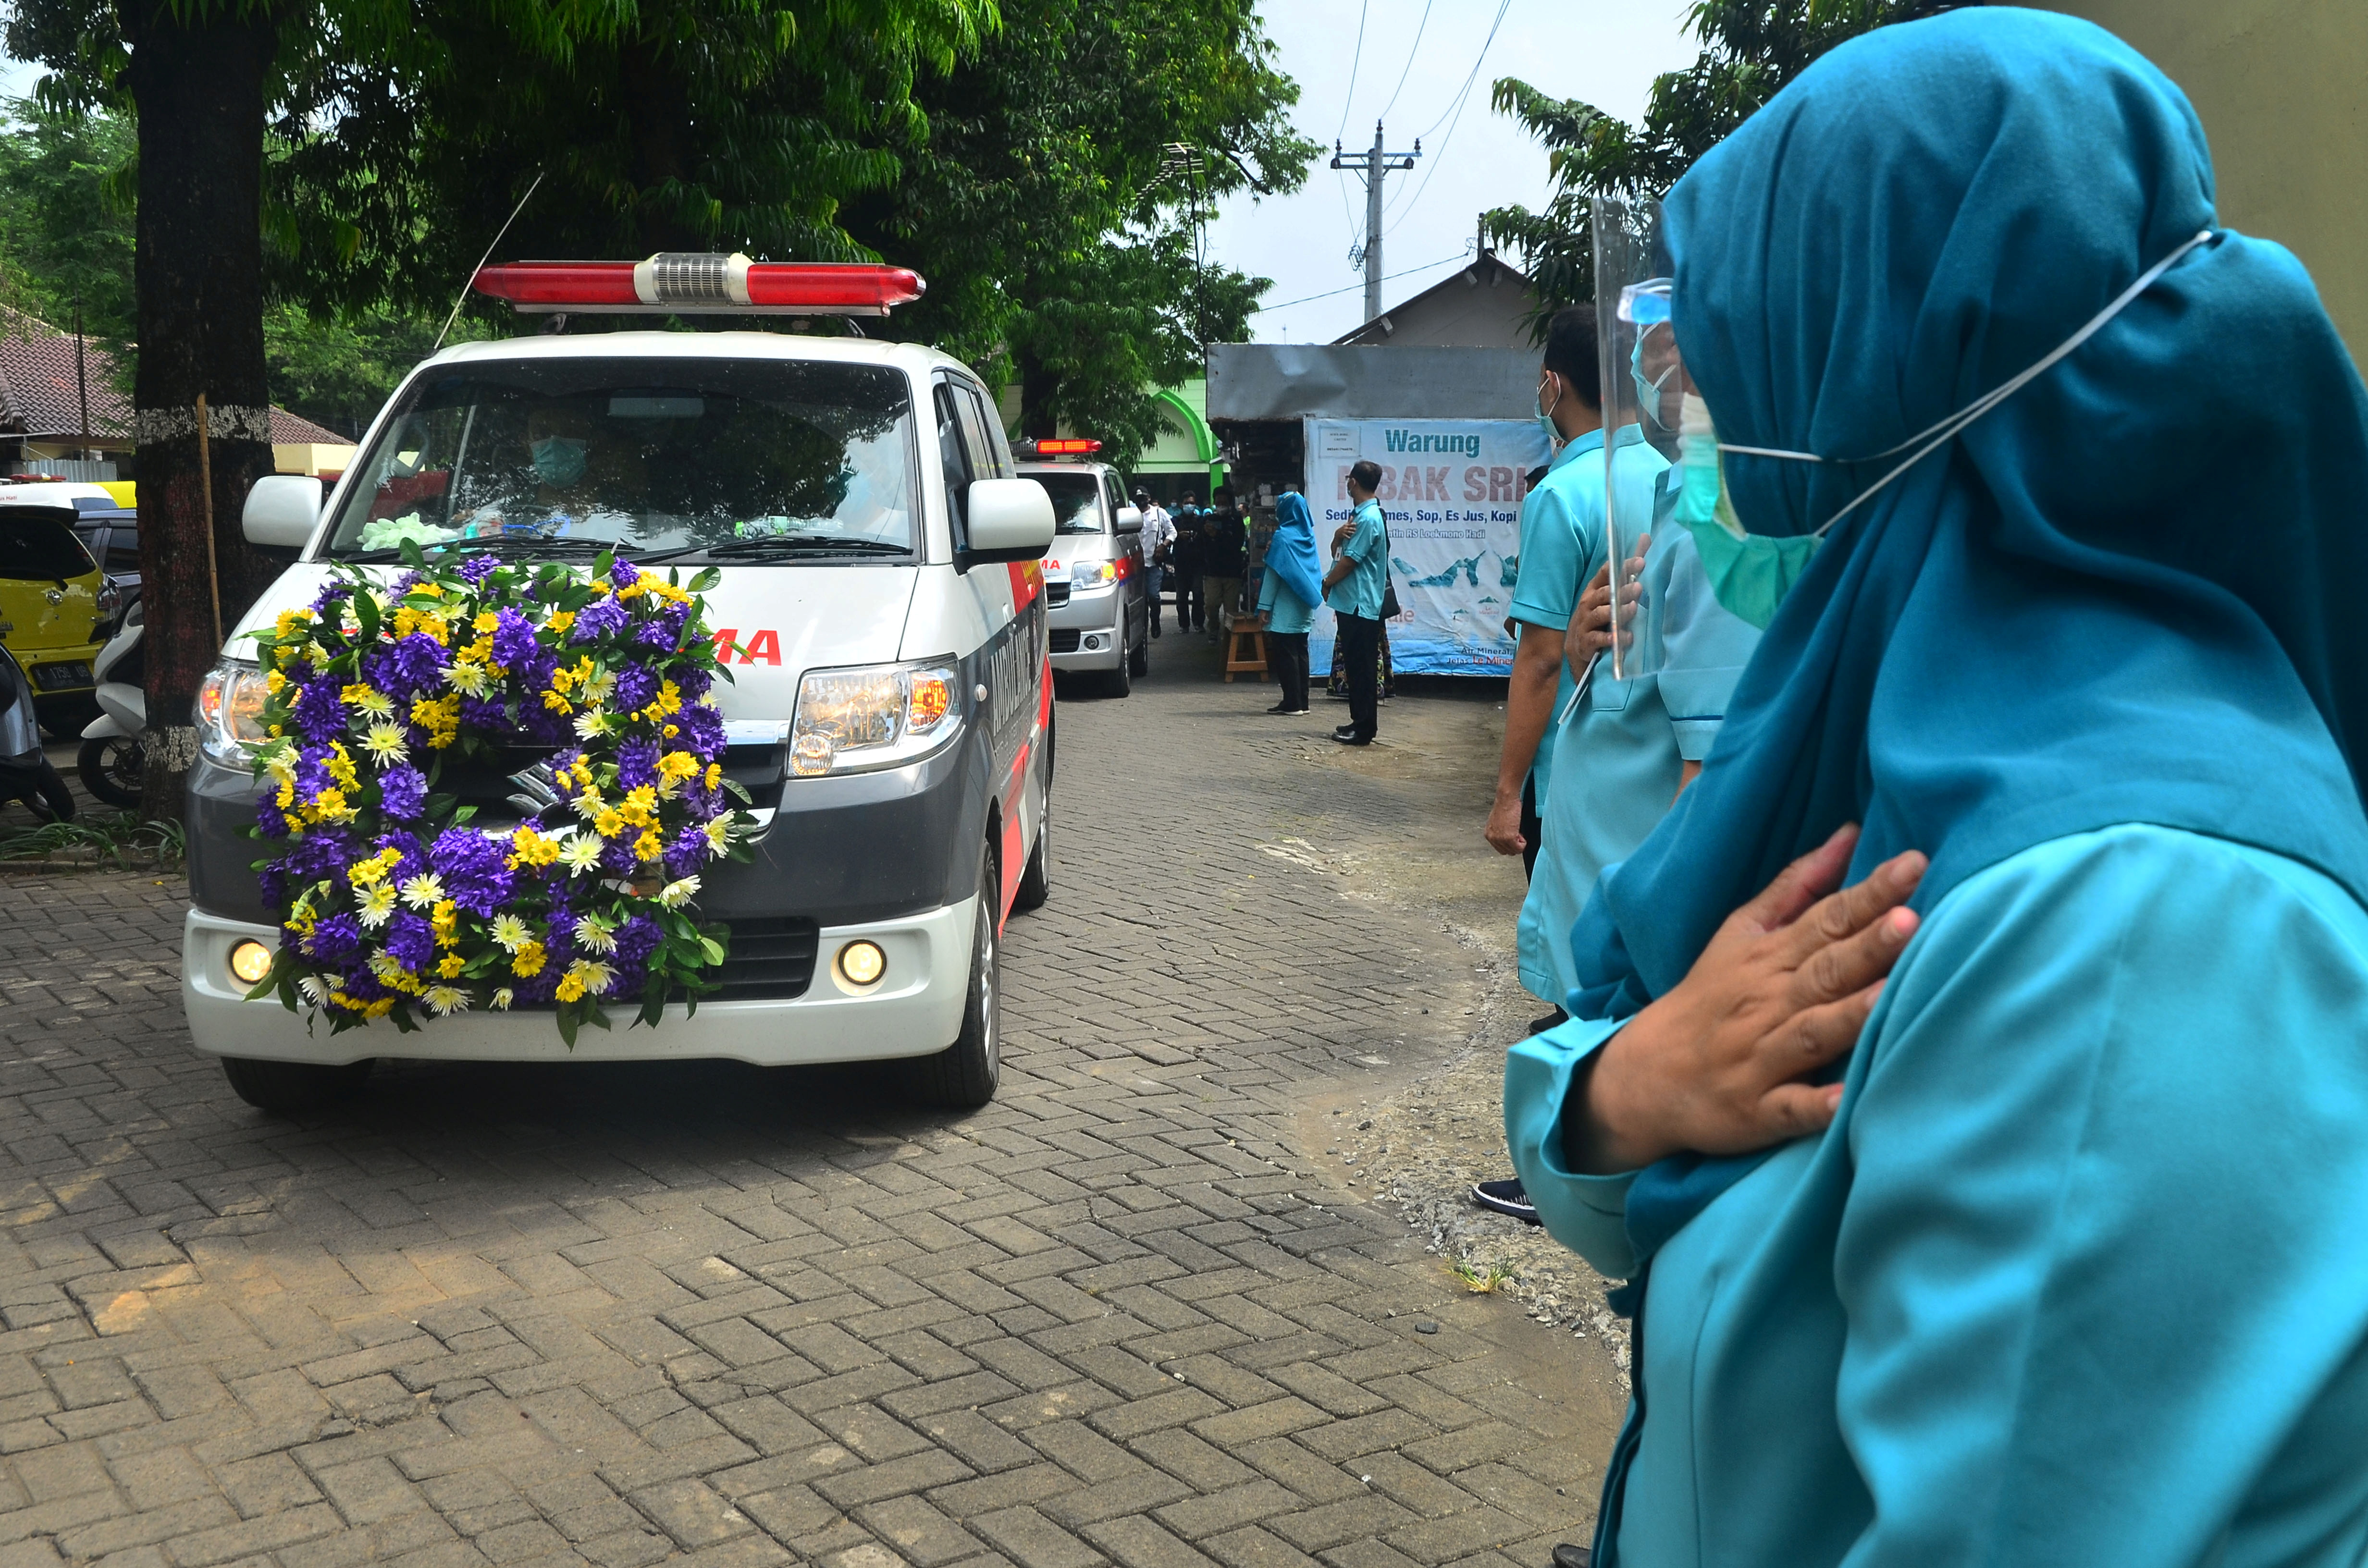 Indonesia reinforces hospitals amid worrying COVID-19 surge in some areas